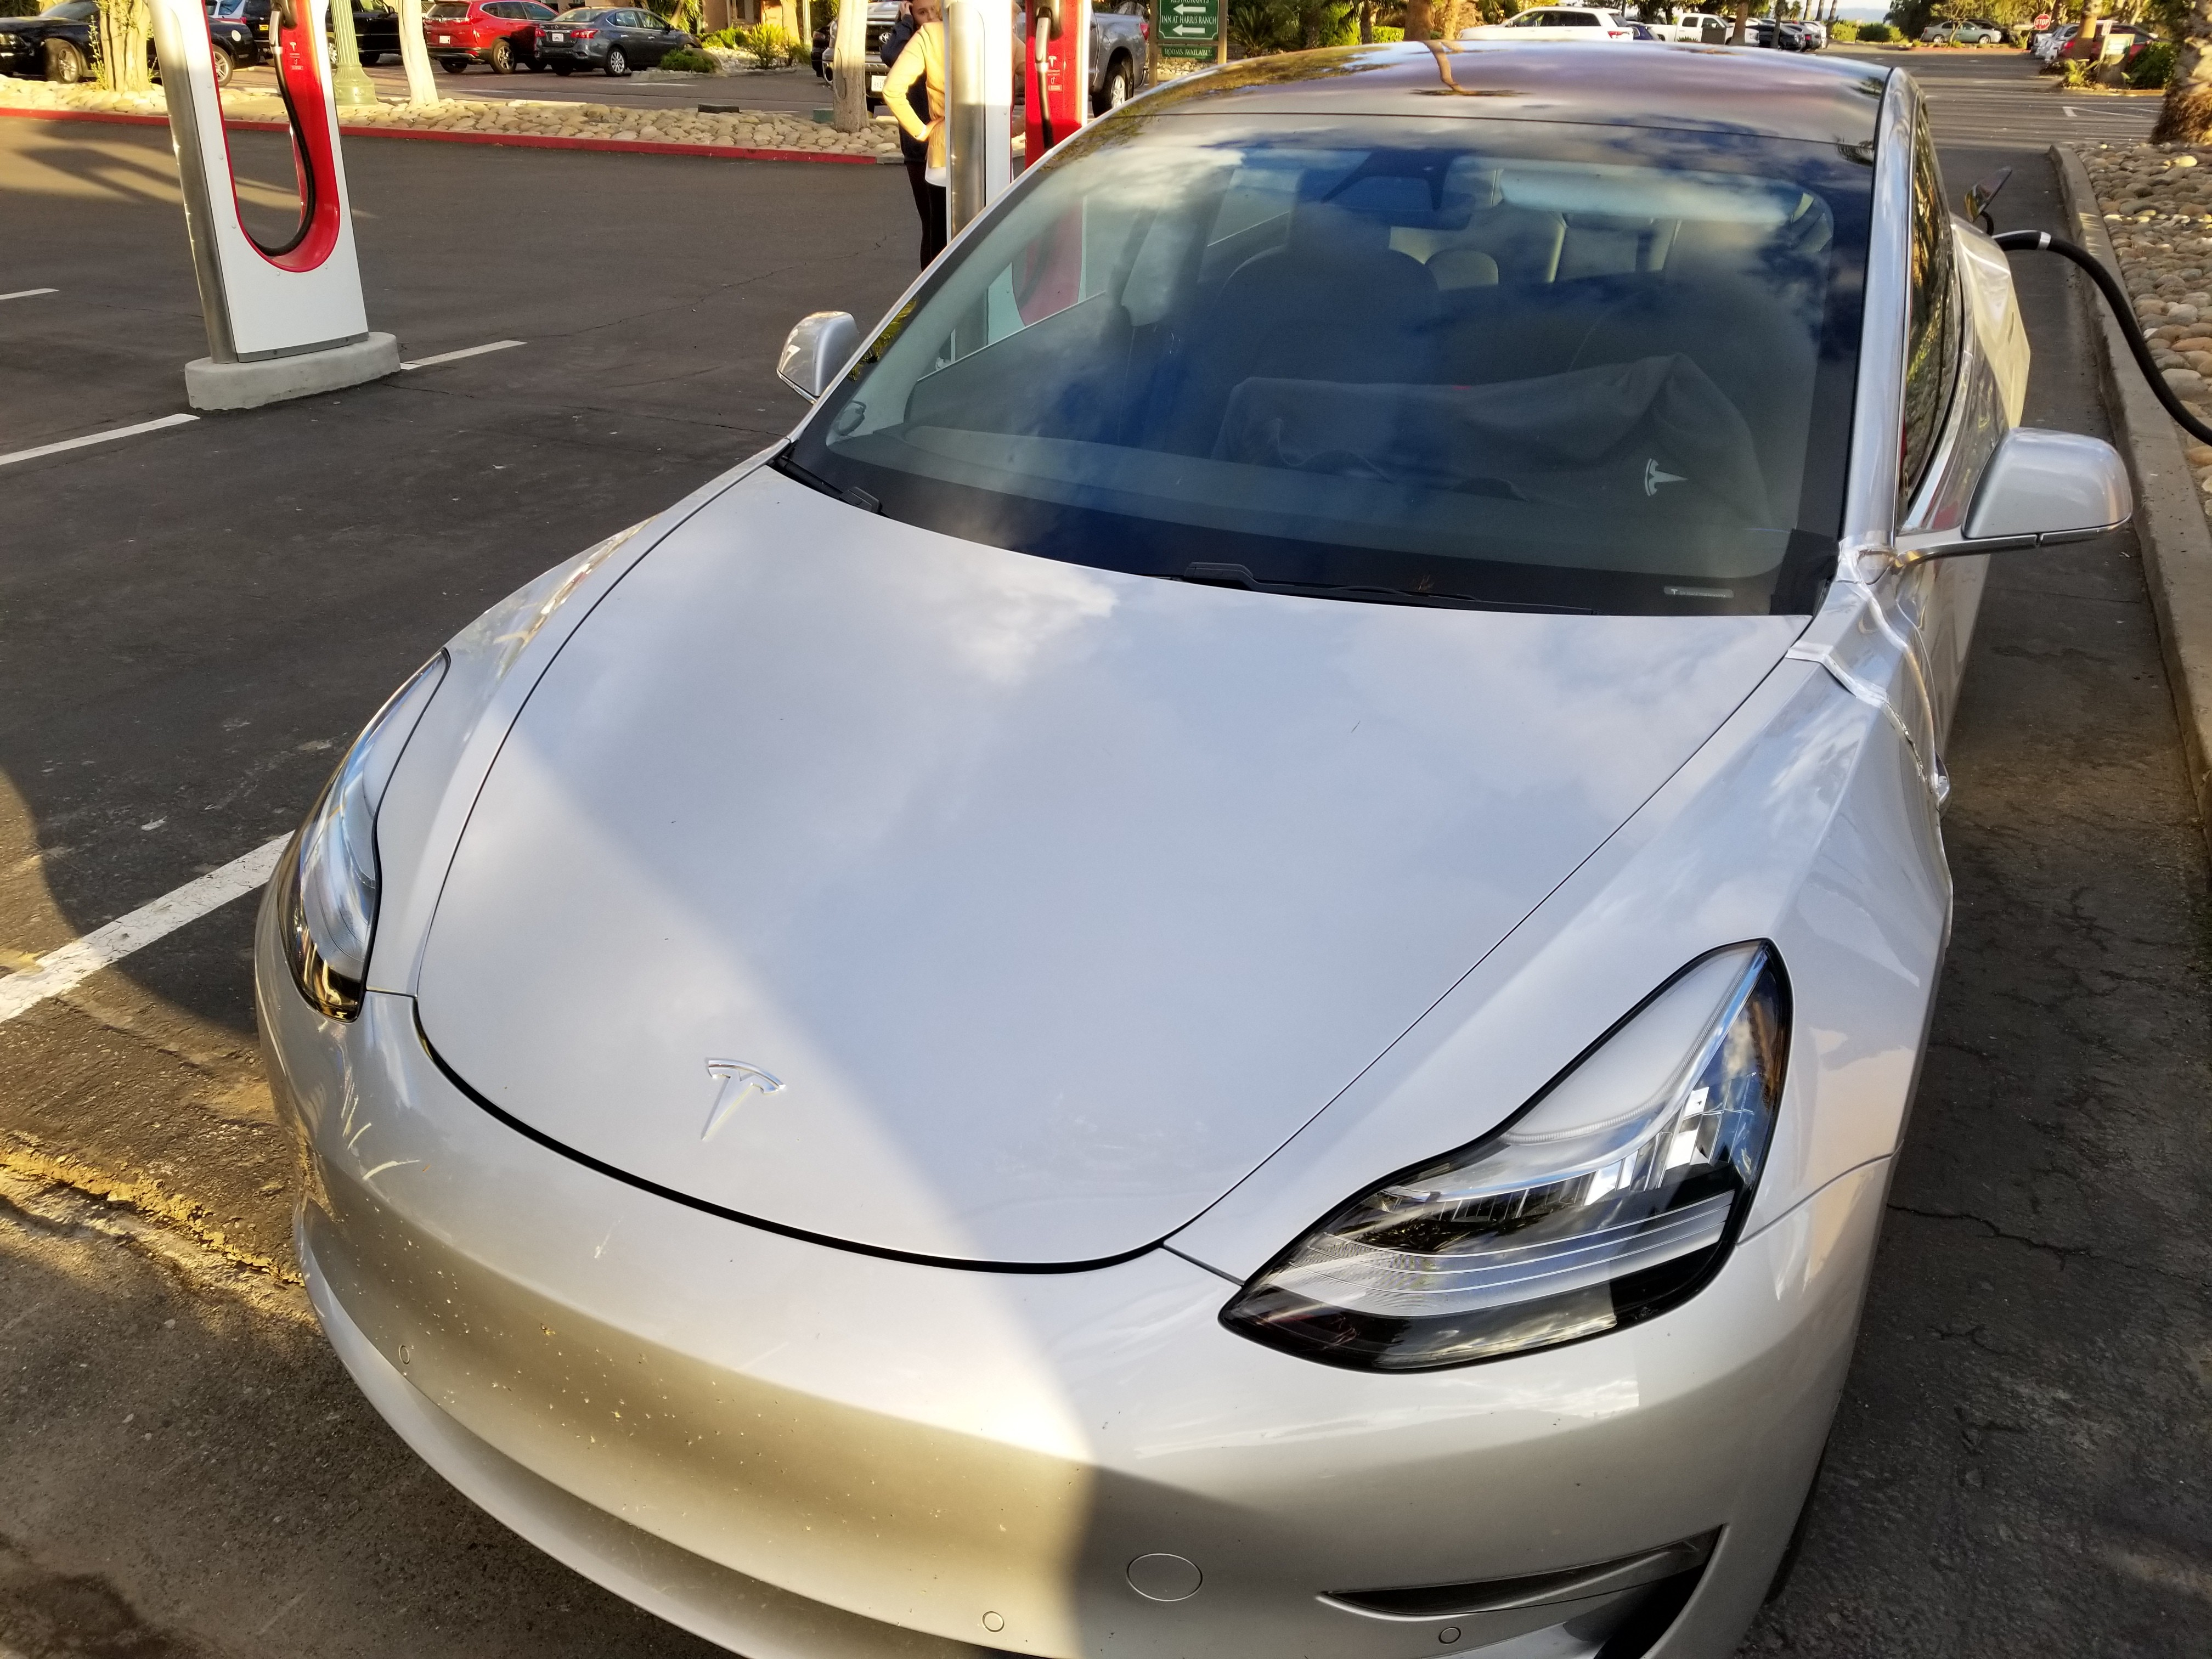 Closest Look Yet At Tesla Model 3 Exposes Panel Gaps ...